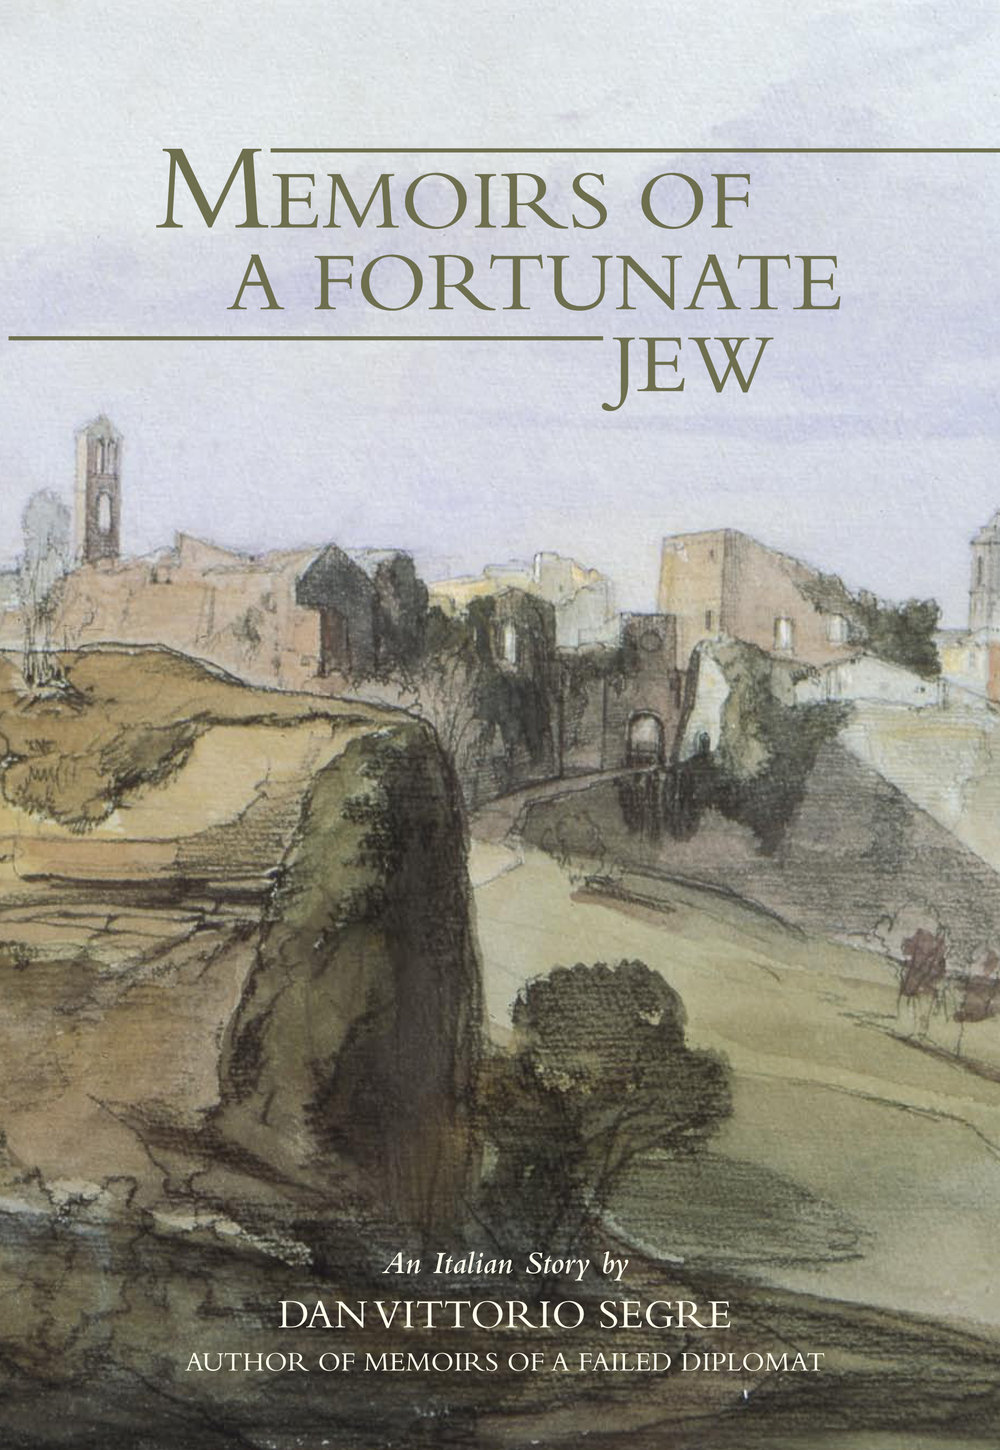 Memoirs of a Fortunate Jew